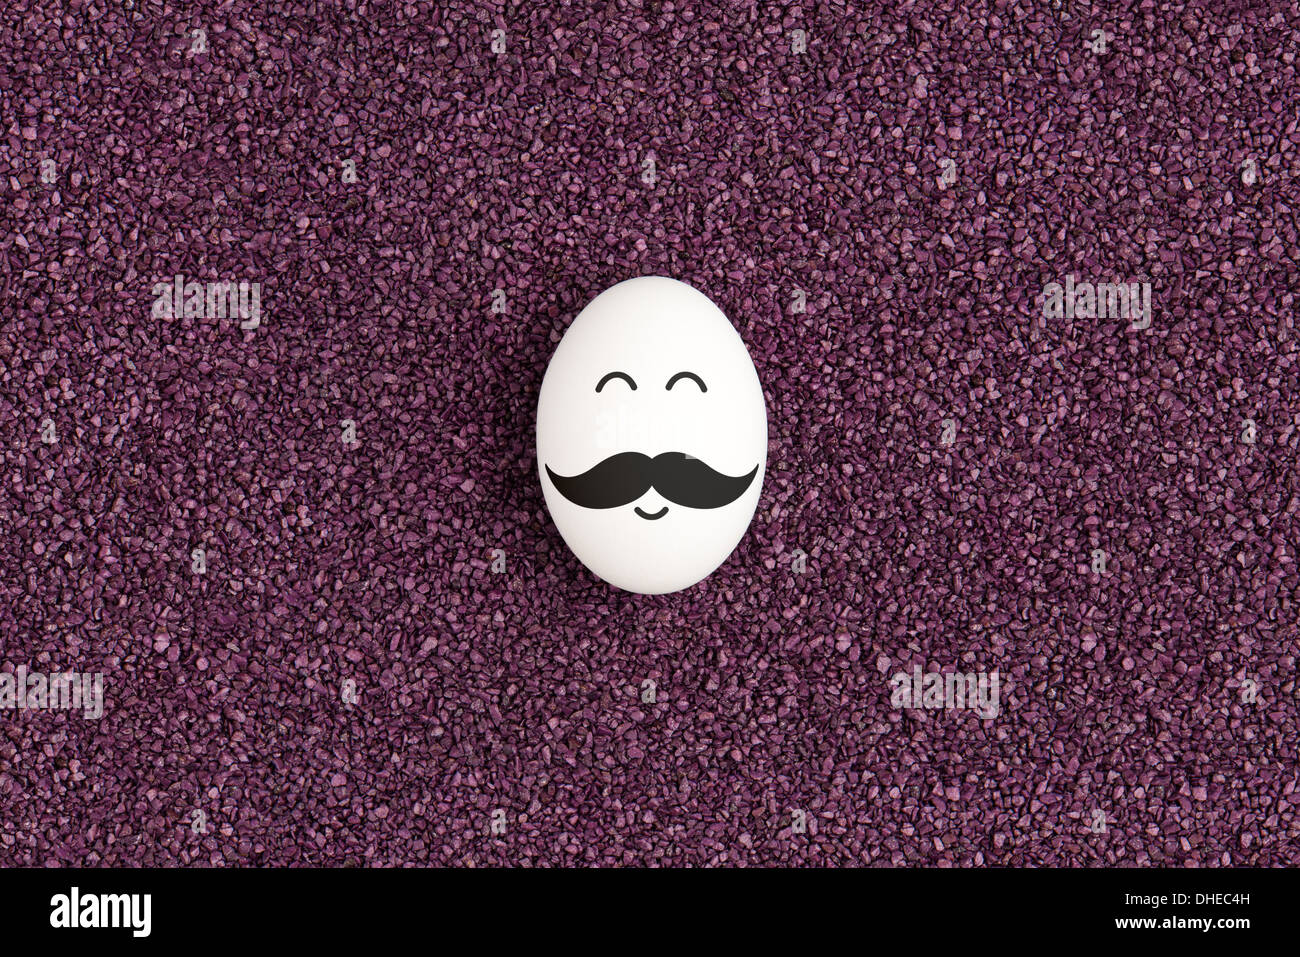 A Single Egg With Mustache Are Lying On The Decorative Purple Sand